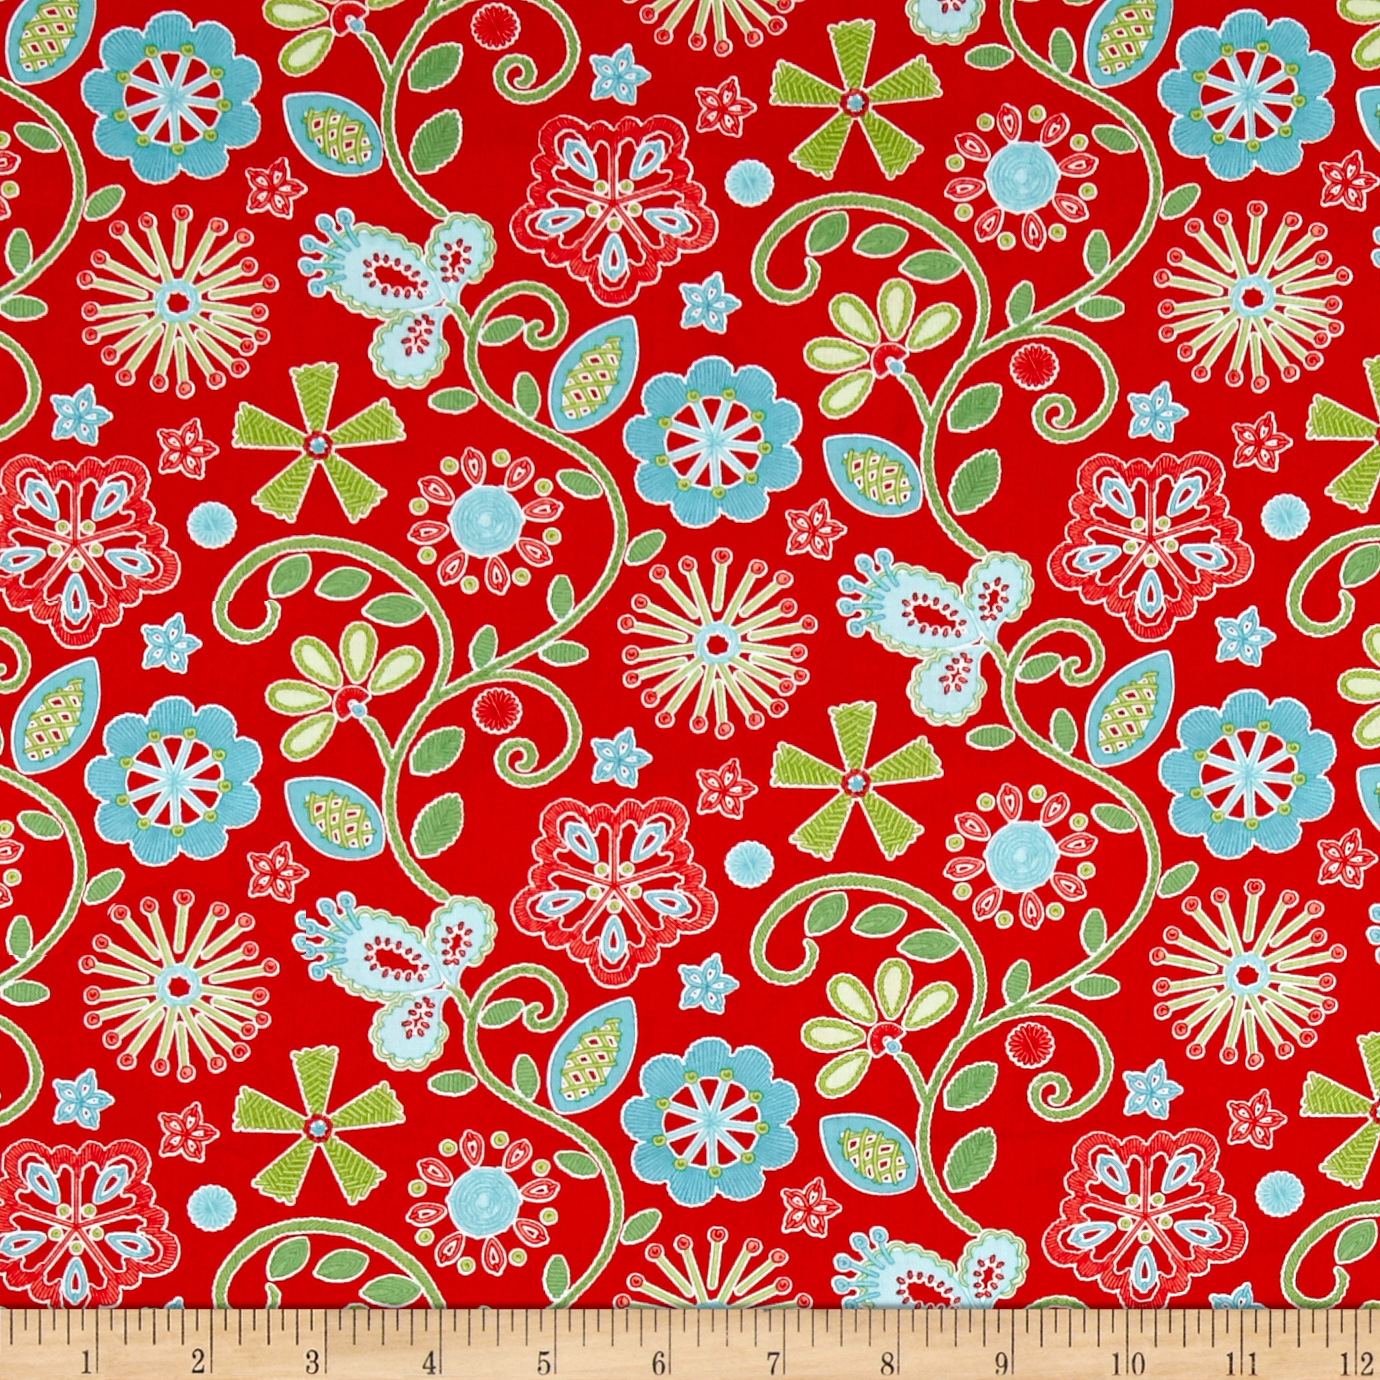 Sewing Room Embroidery Red Fabric